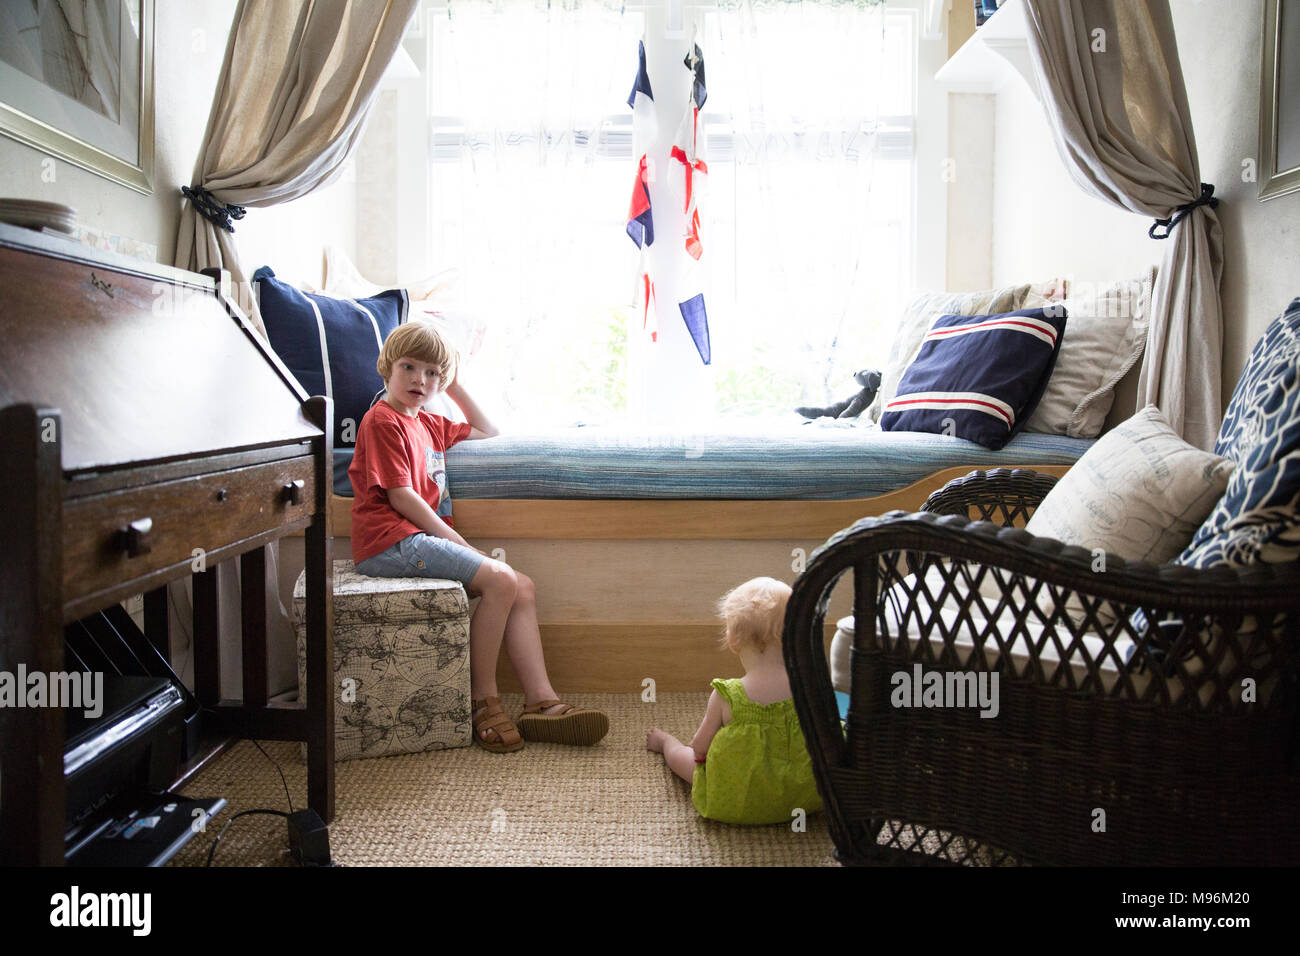 Boy and baby in nautical style bedroom Stock Photo